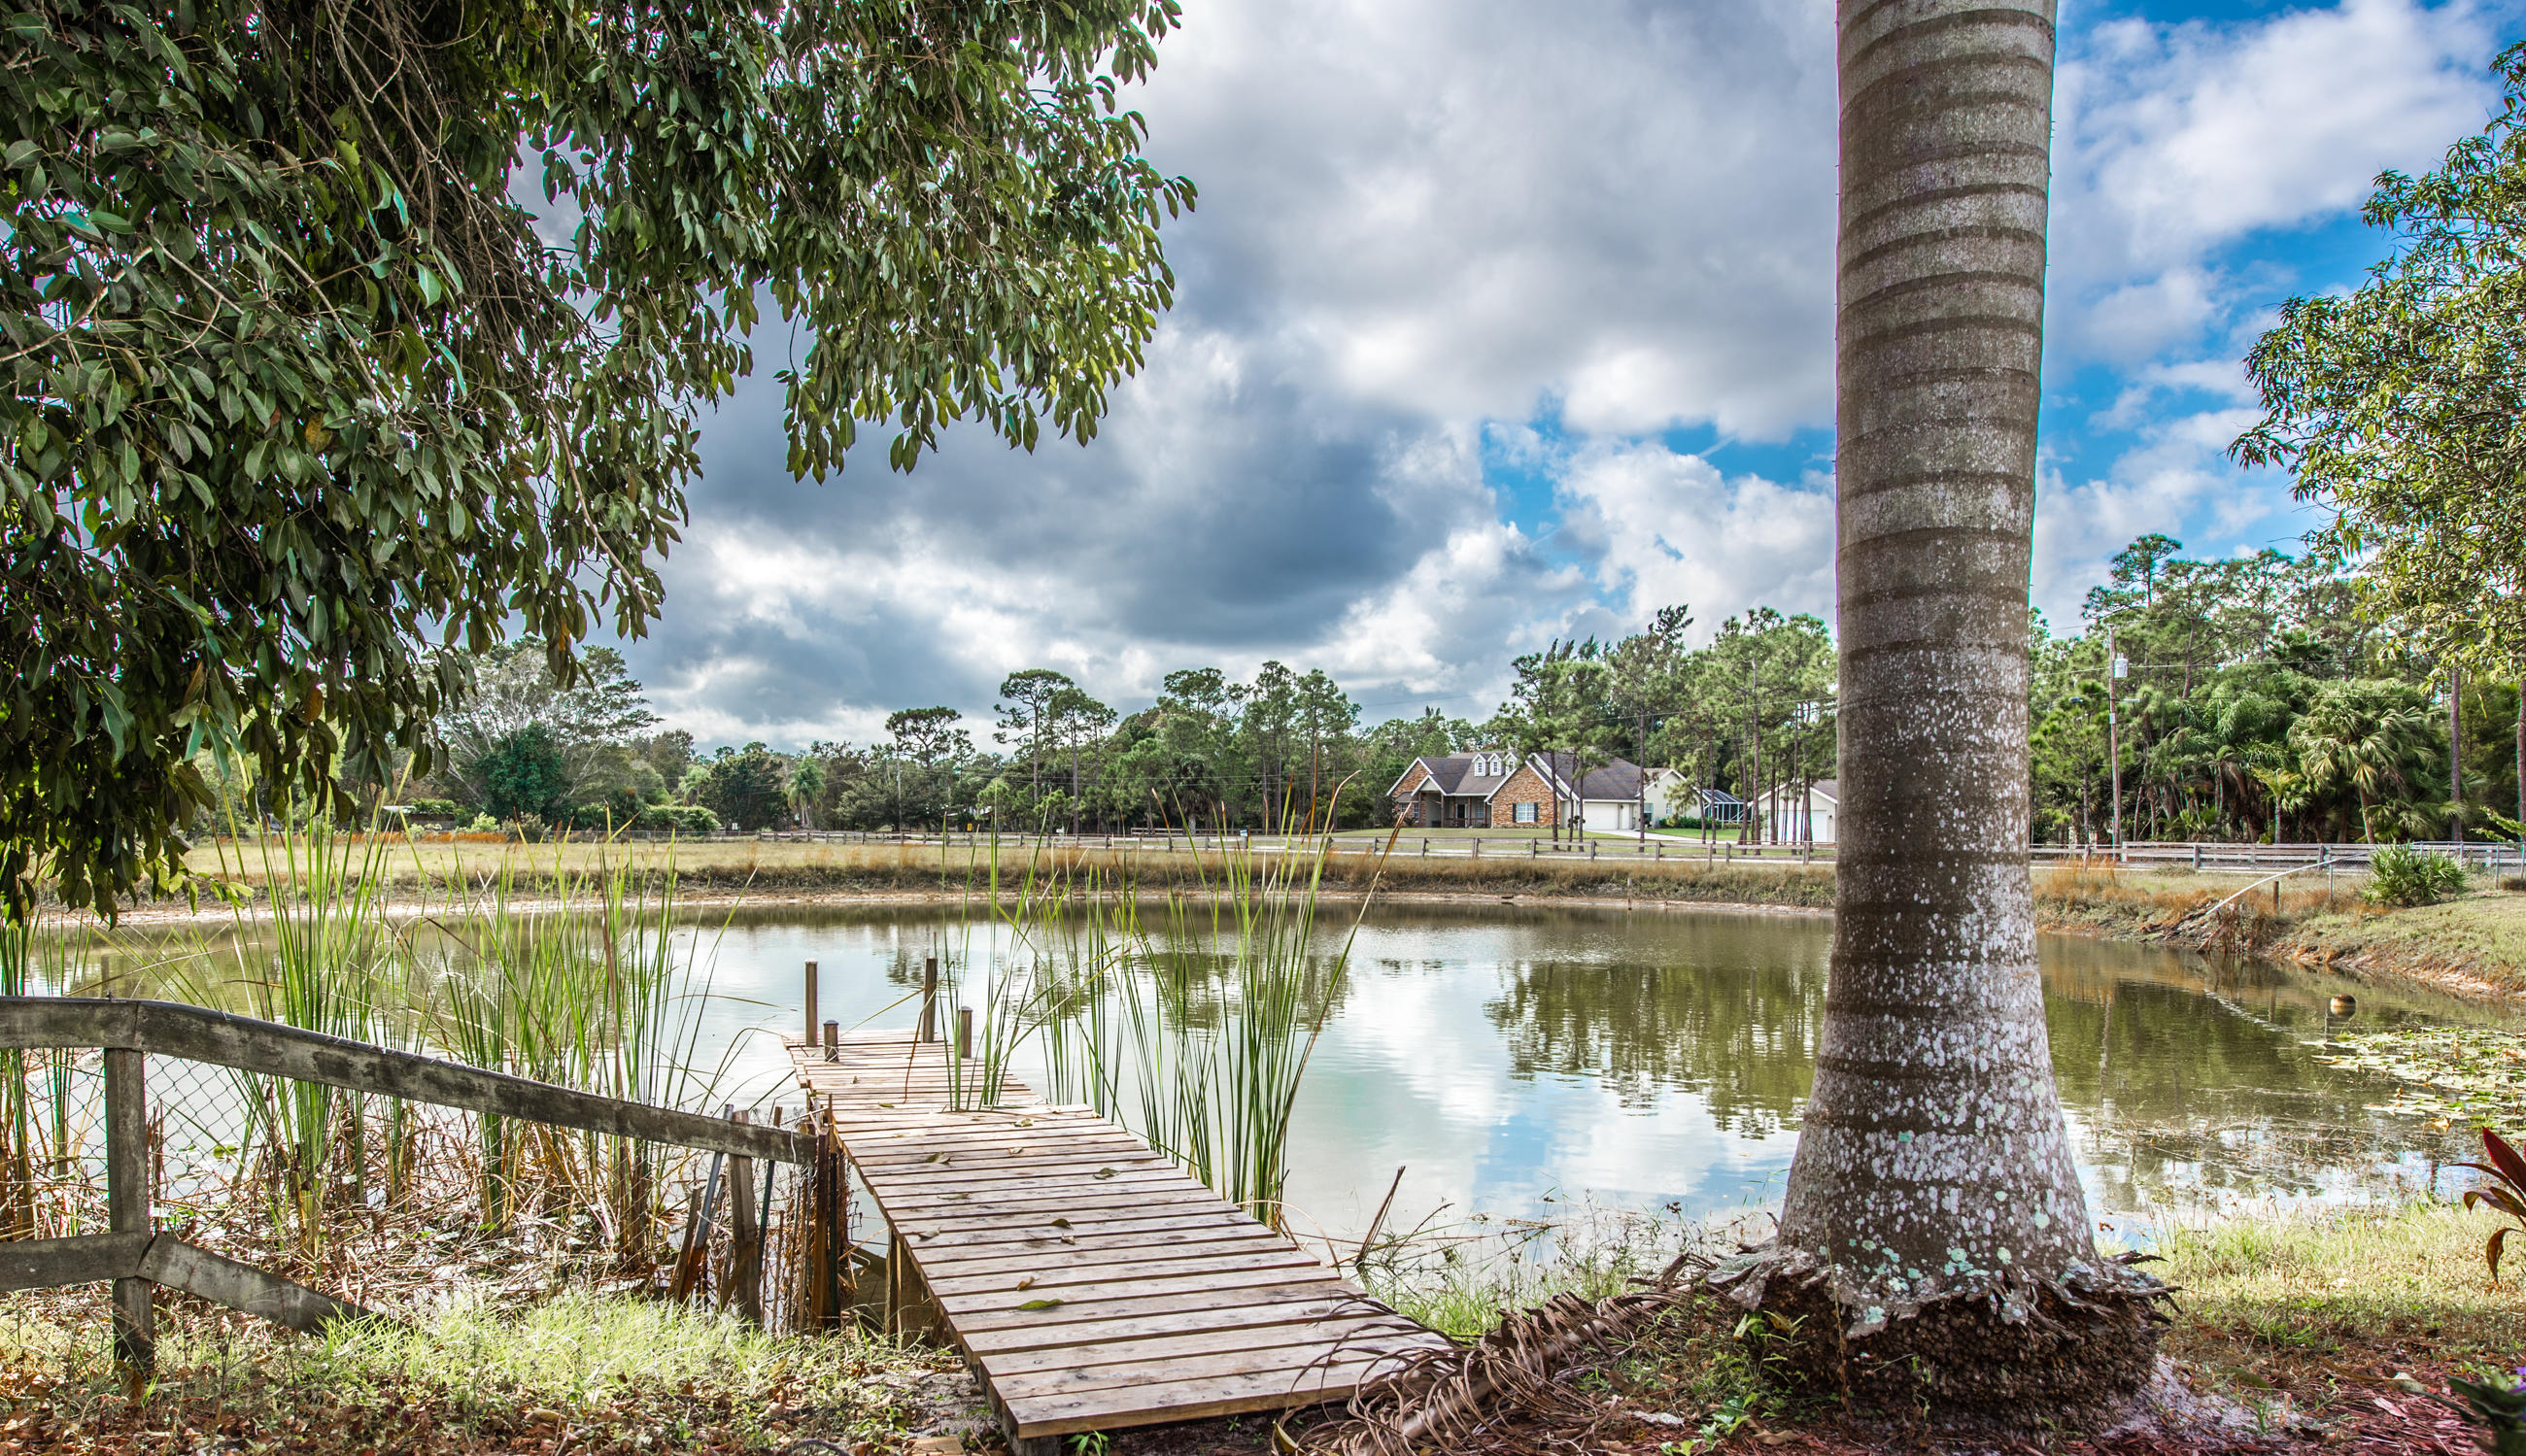 RUSTIC LAKES PALM BEACH GARDENS REAL ESTATE